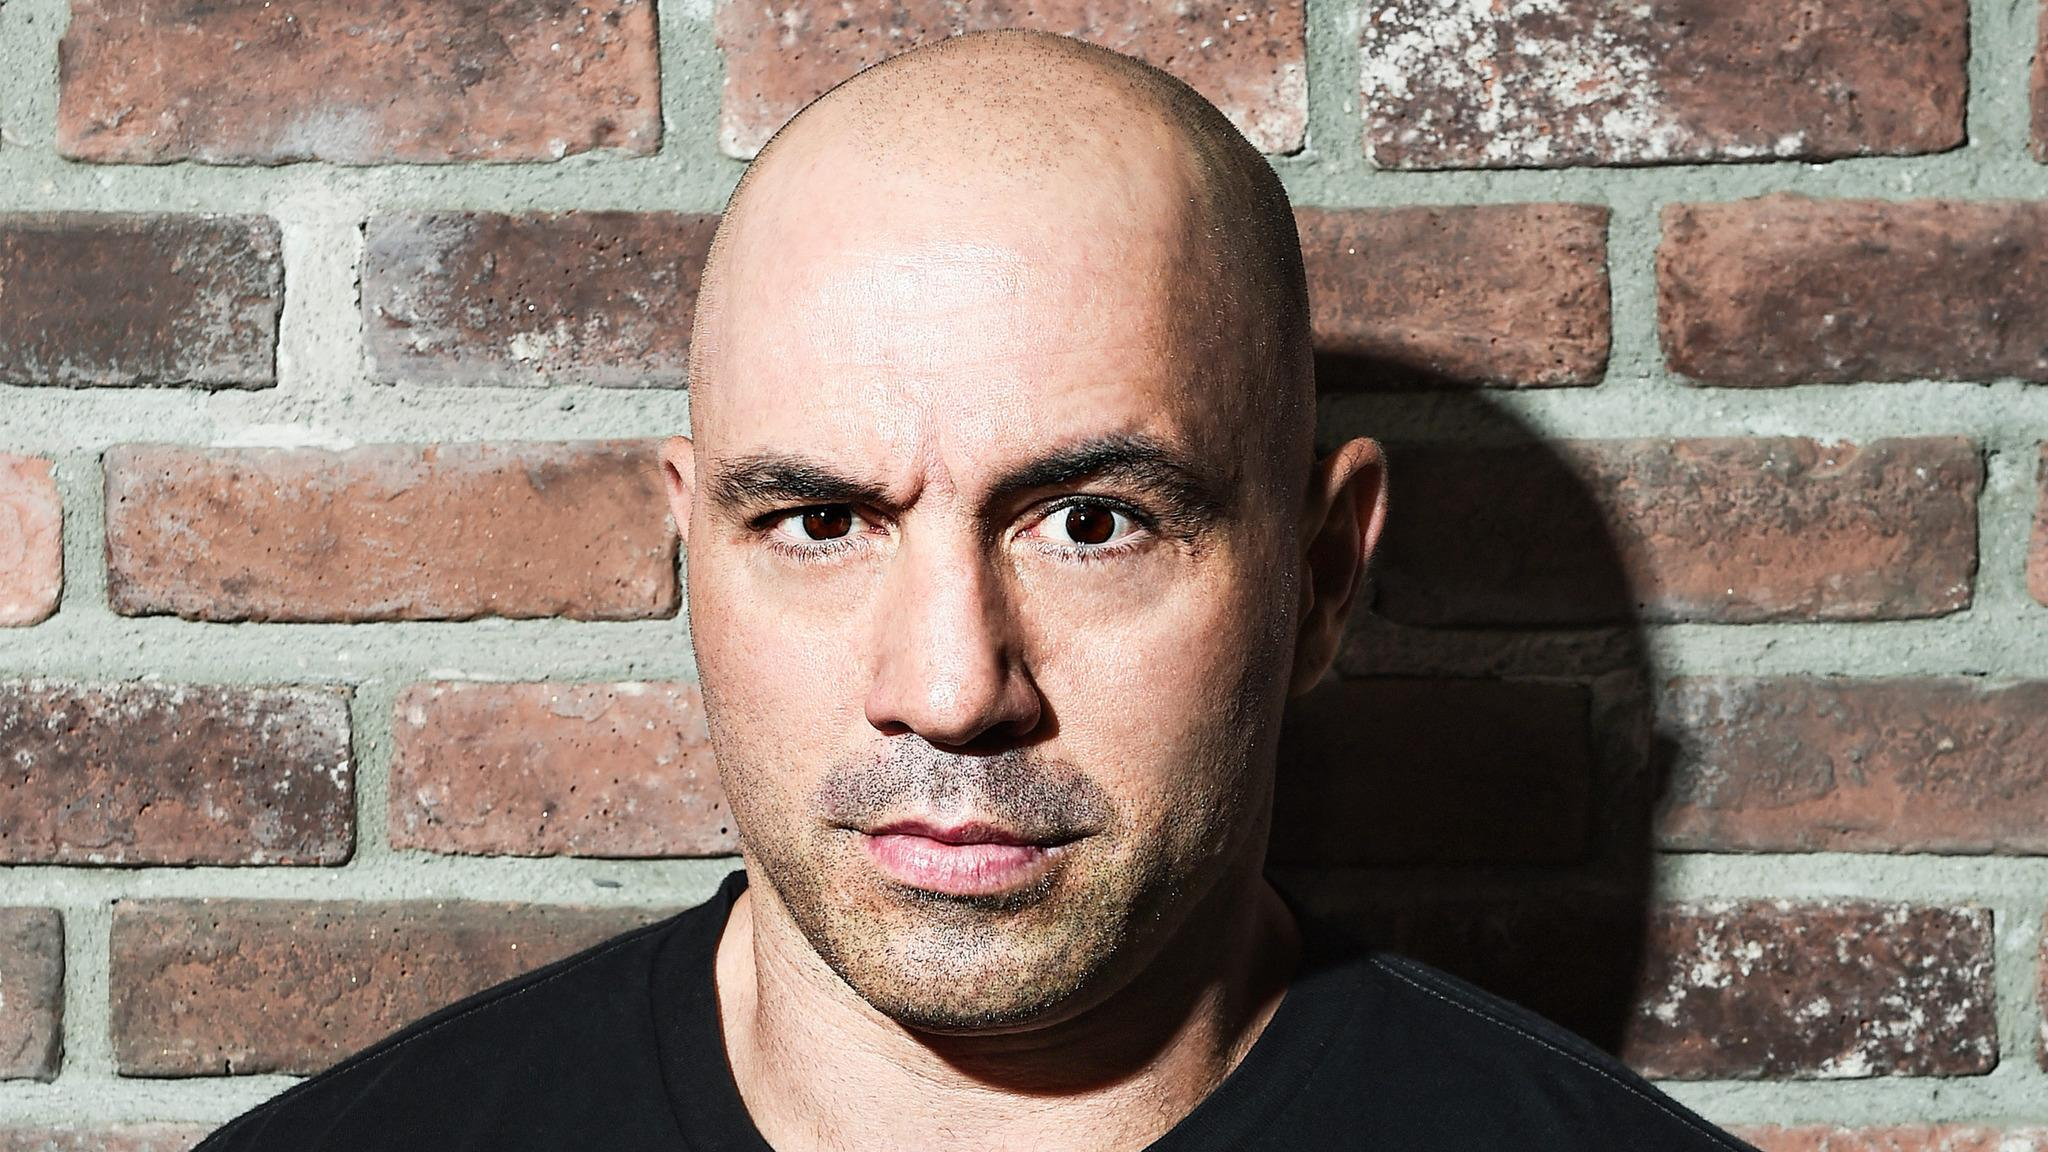 Joe Rogan - Strange Times 2017 Tour at The Tabernacle